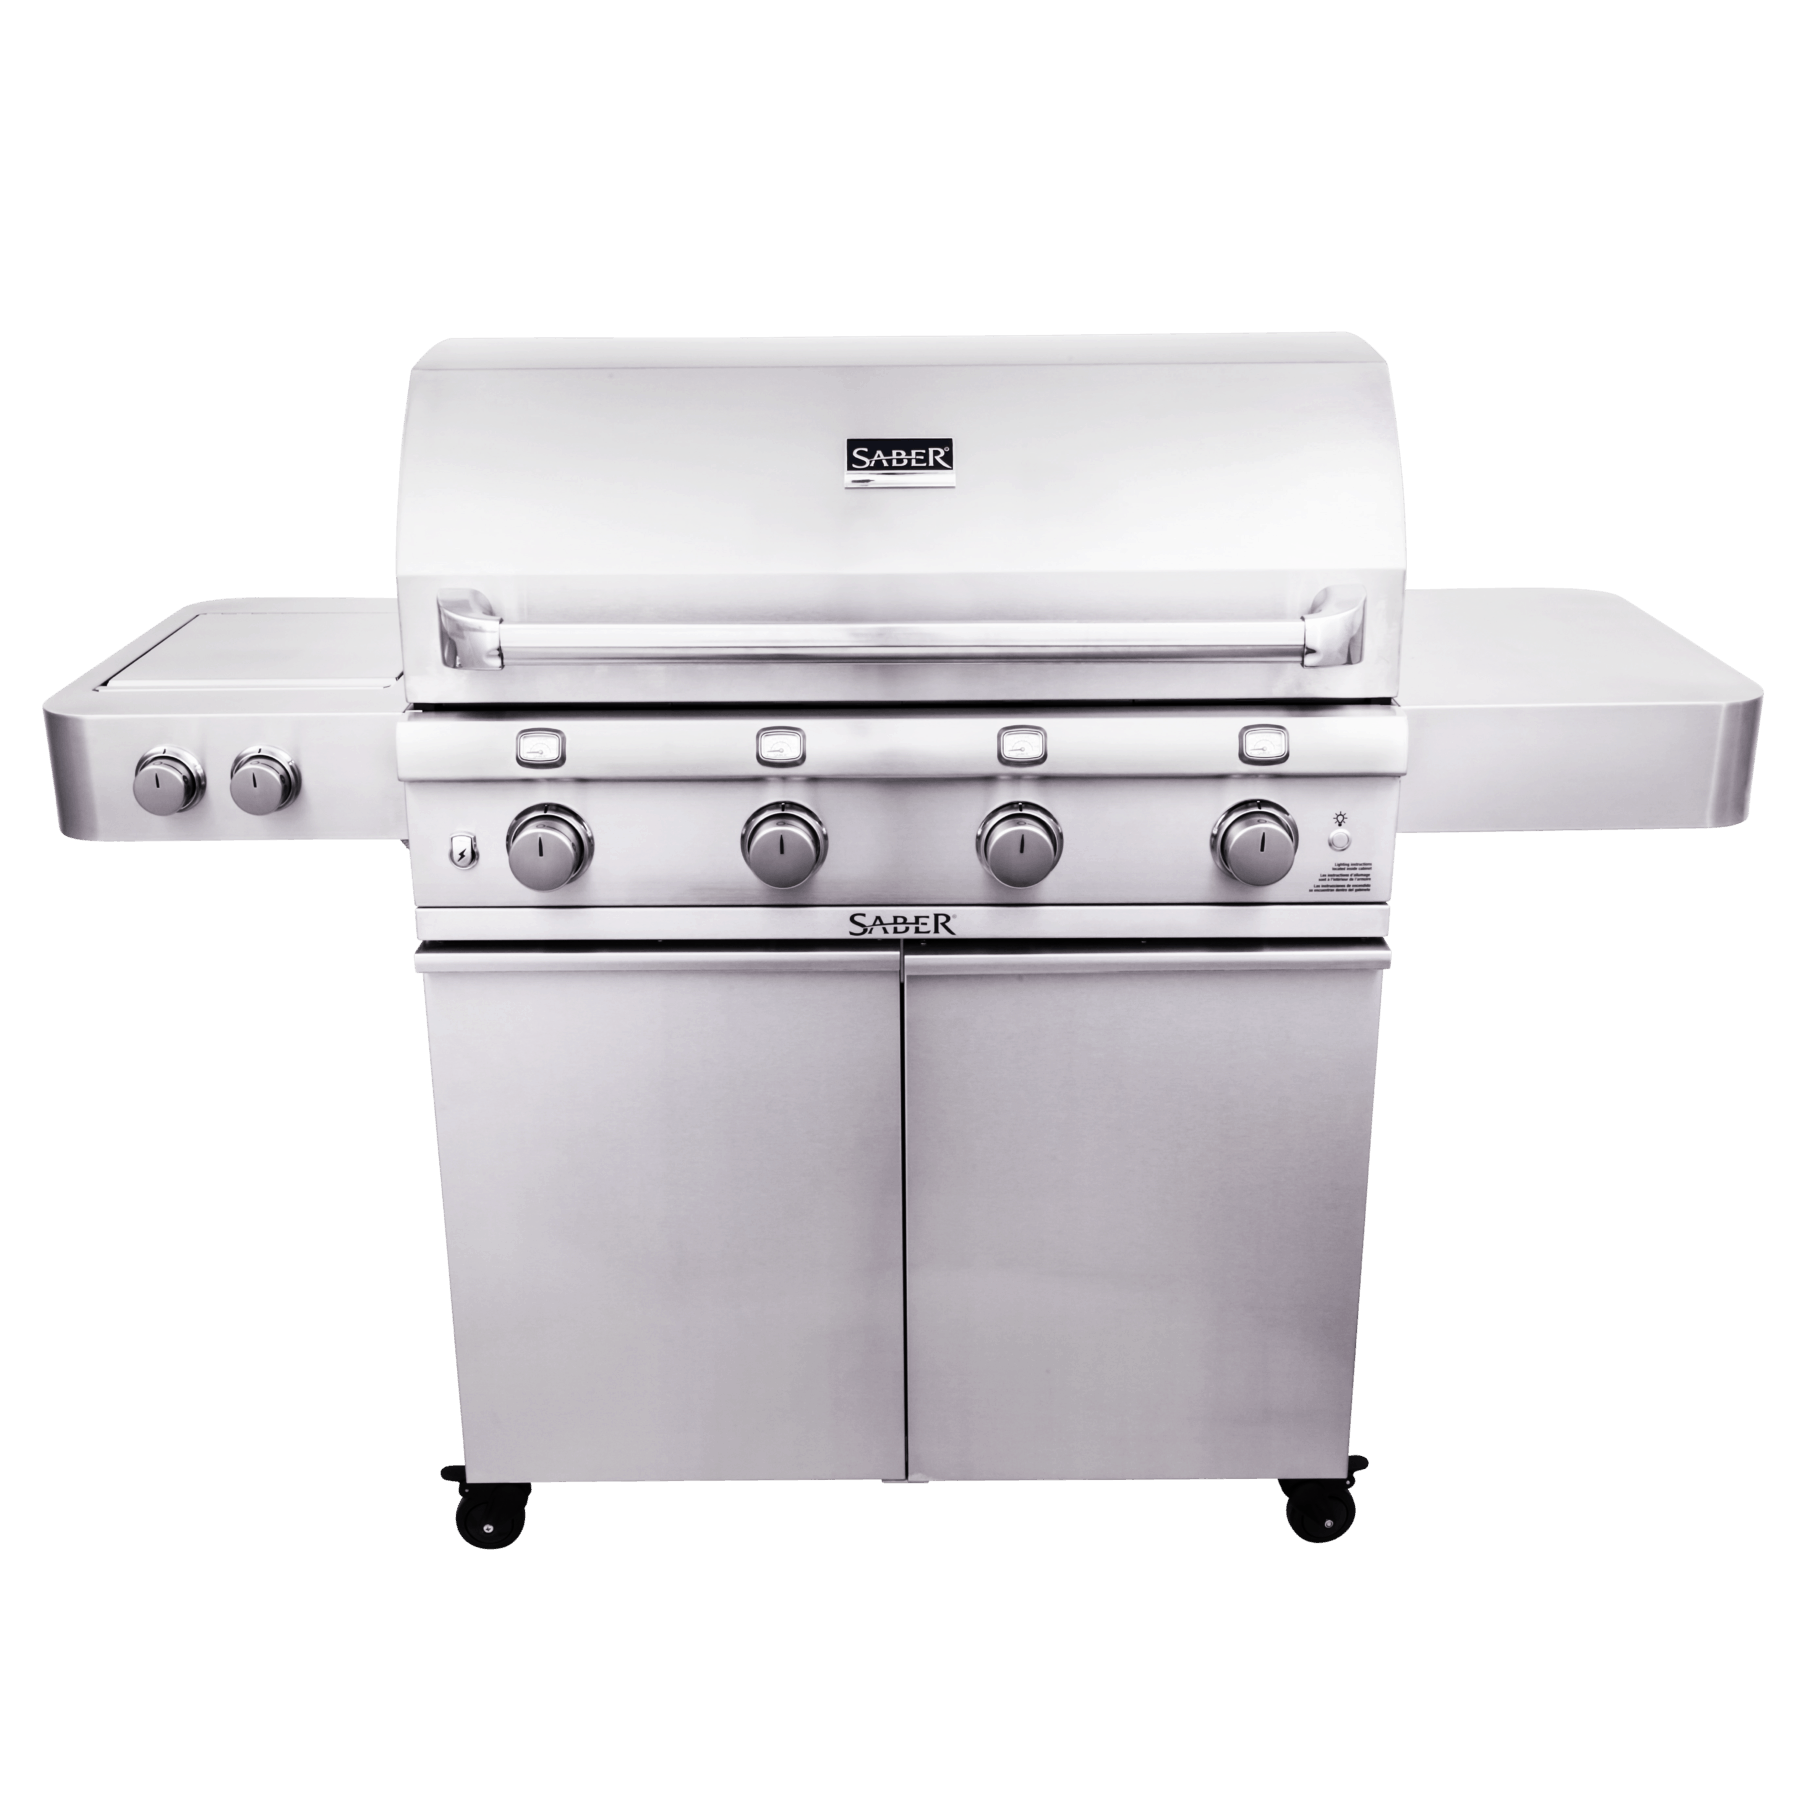 R67SC0017_SABER__Stainless_Steel_4-Burner_Gas_Grill_001